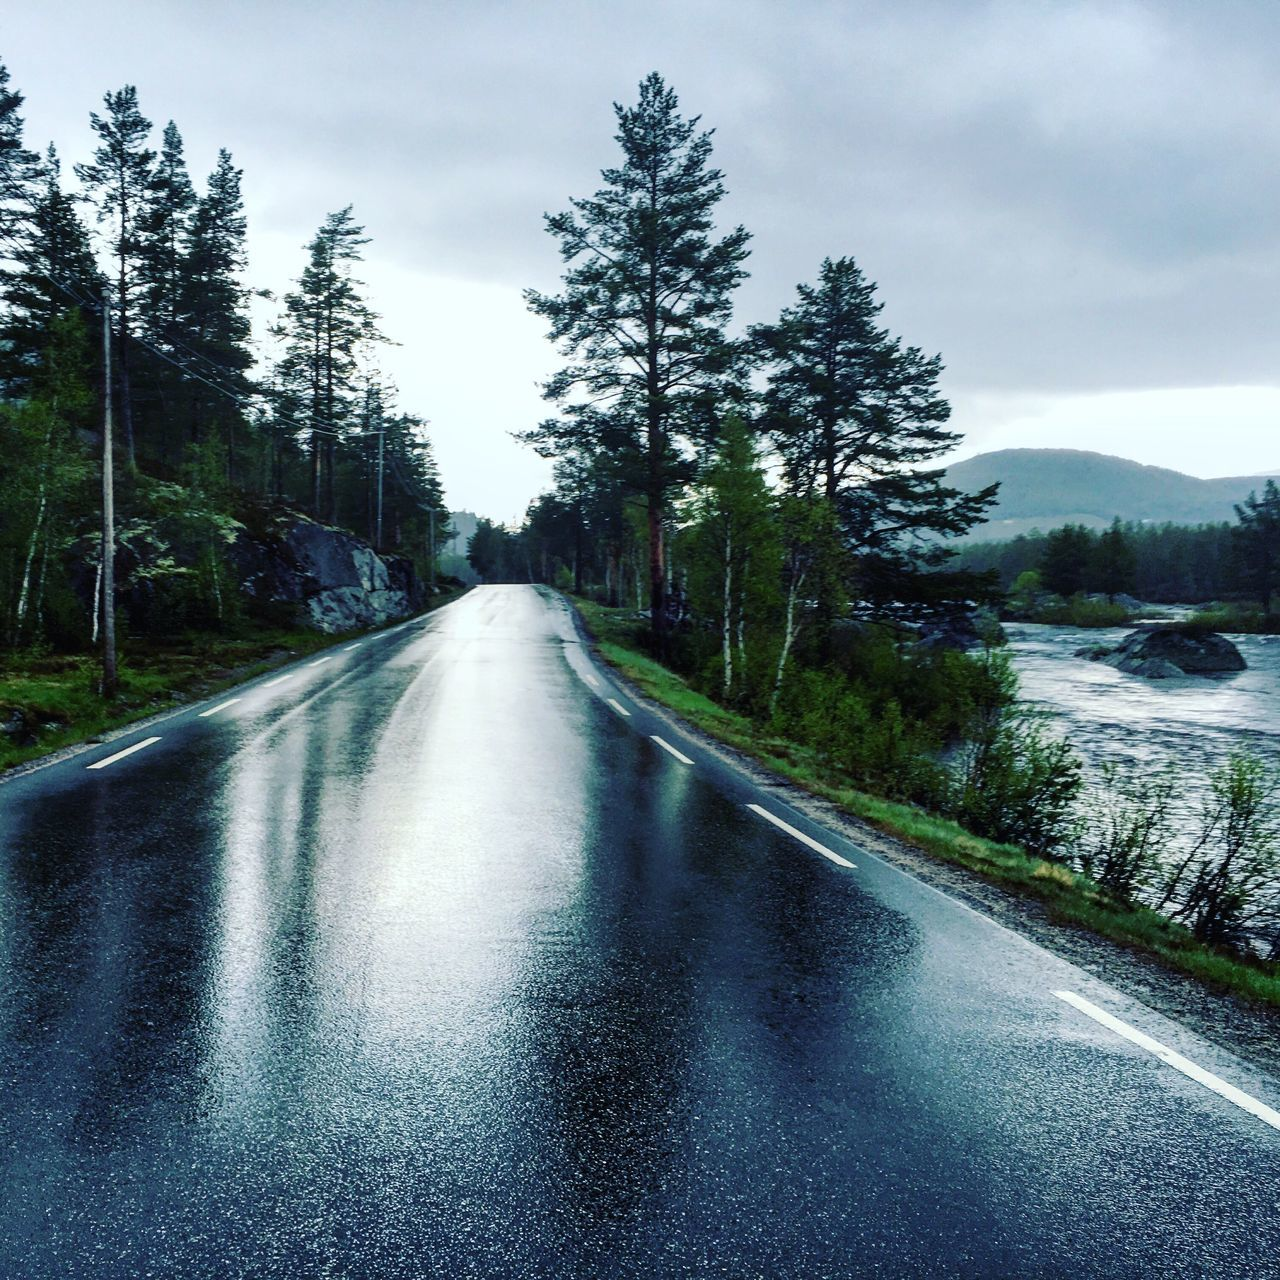 Tree The Way Forward Road Nature Forest Outdoors No People Beauty In Nature Day Scenics Landscape Street Rain After The Rain After Rain Freshness Way River Mountain Norway Norge Grey Sky Shiny Water Travel